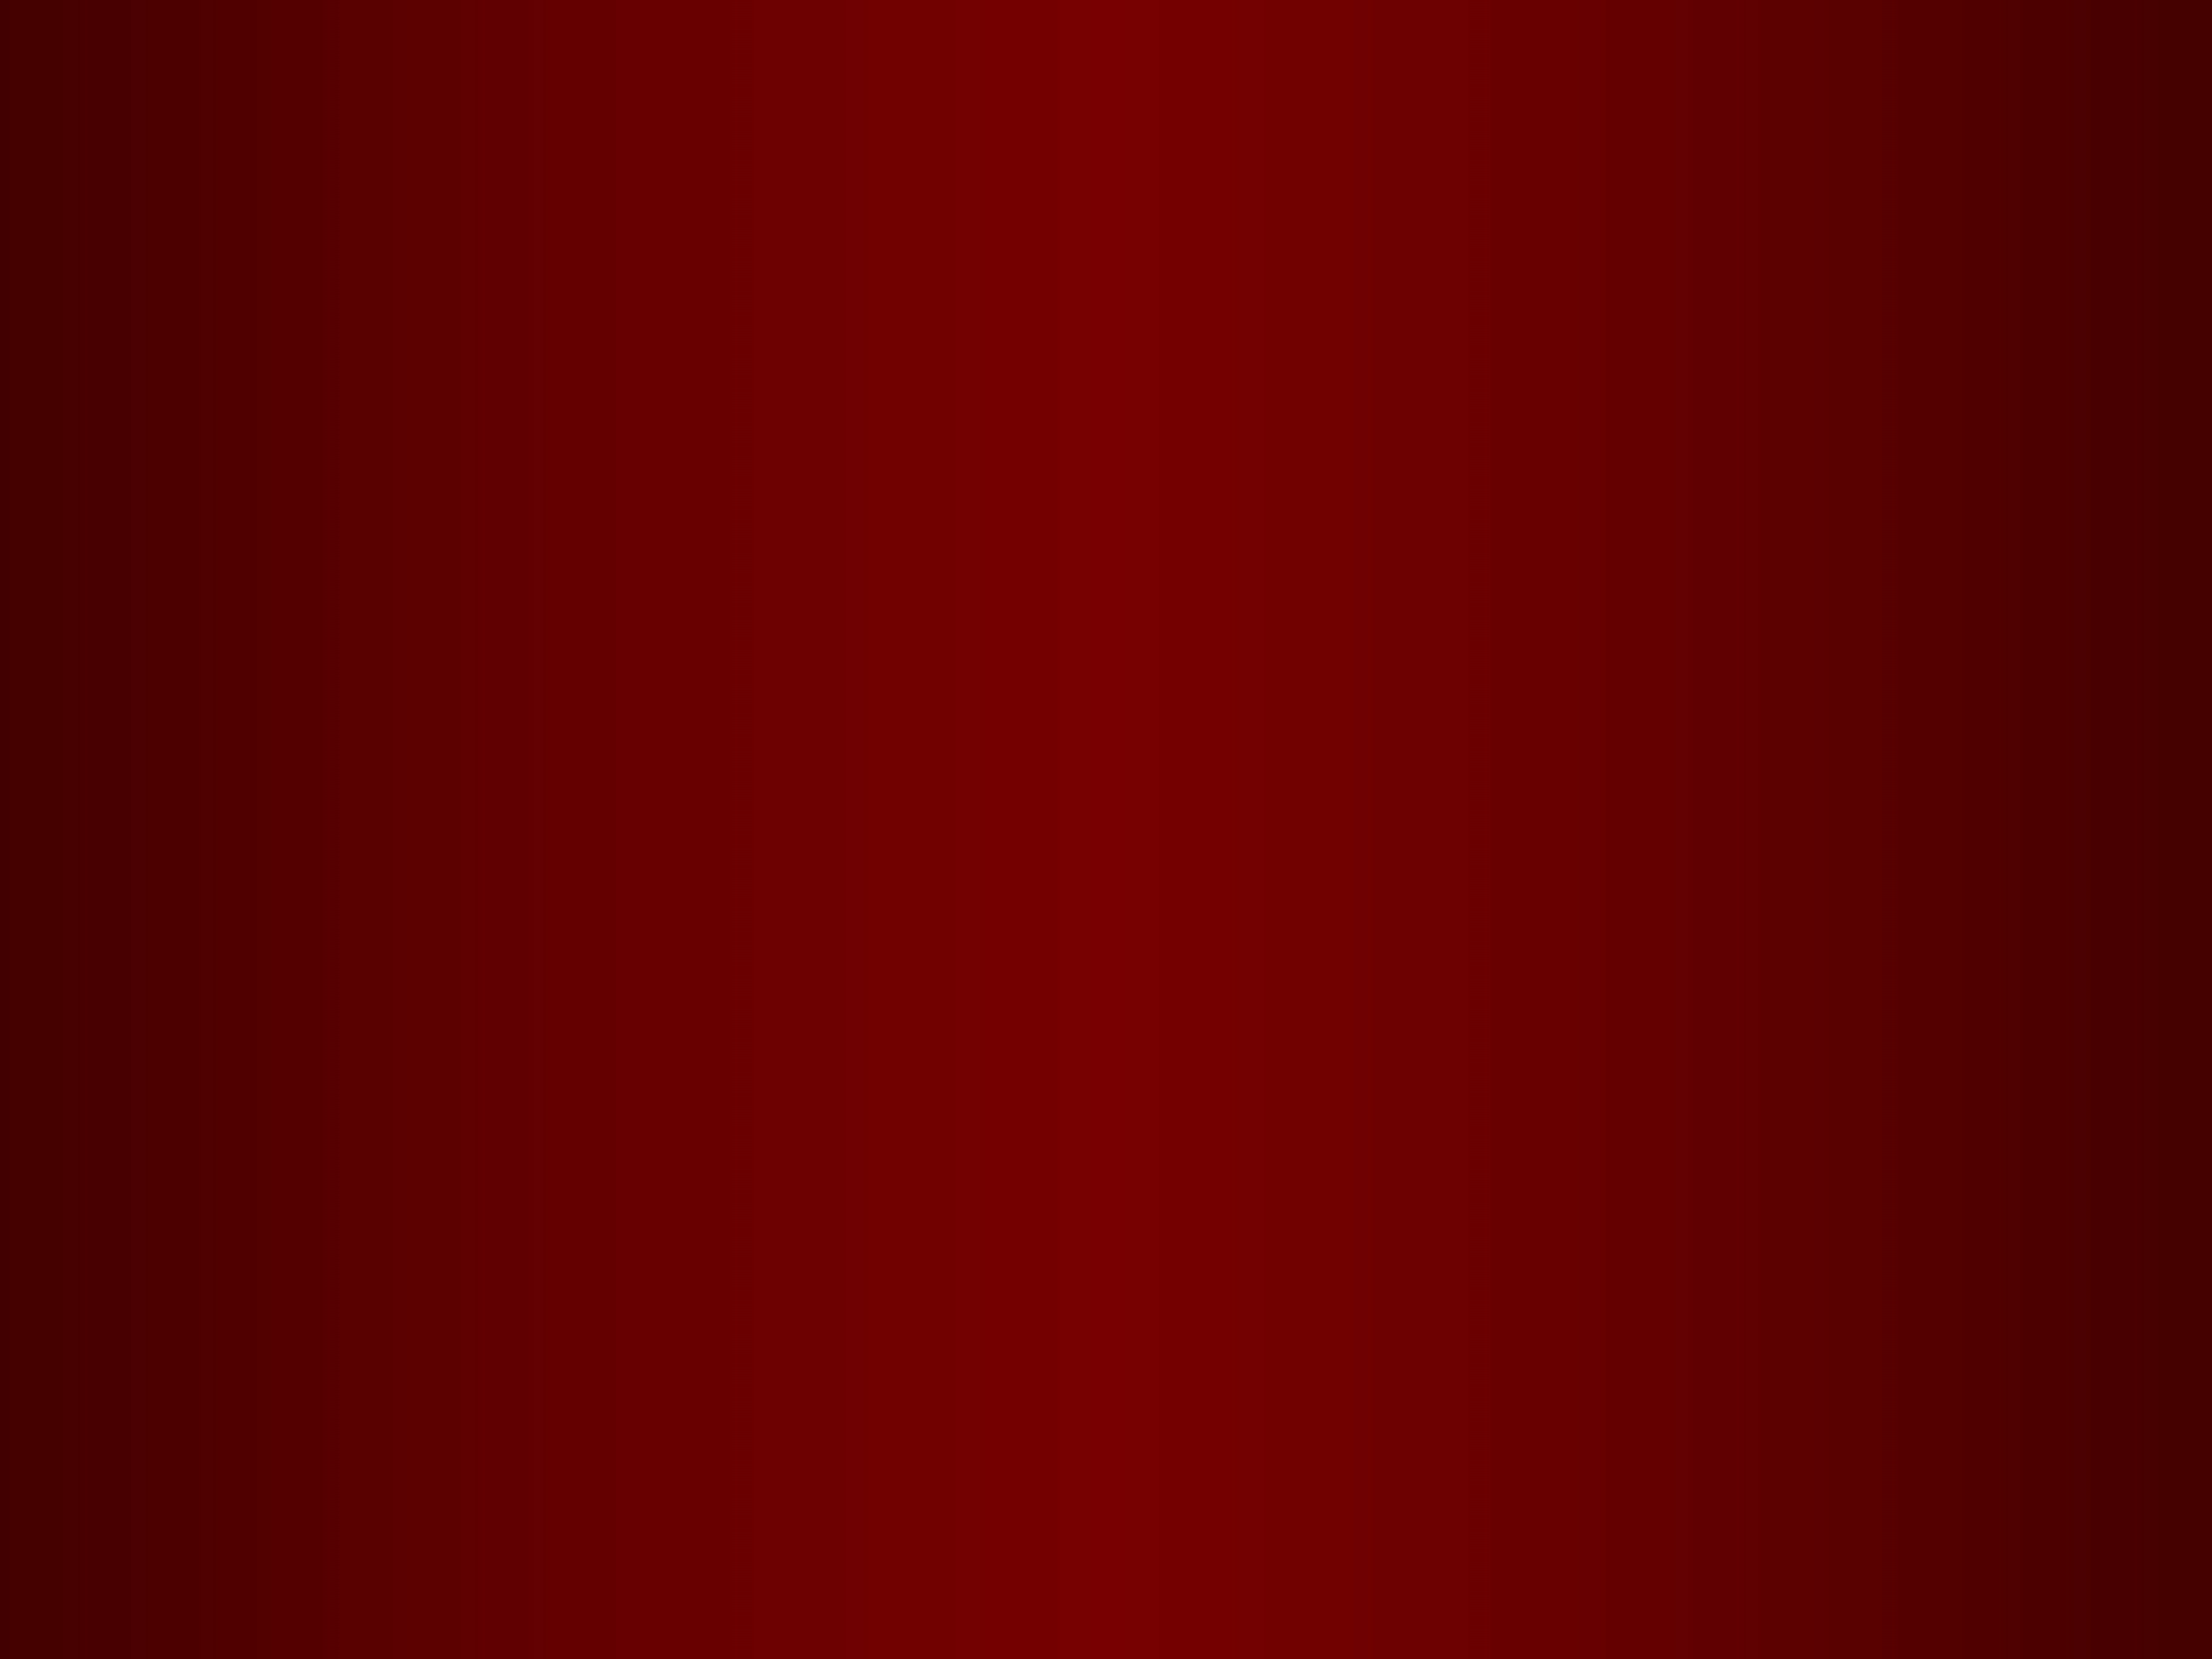 red maroon line background - photo #39